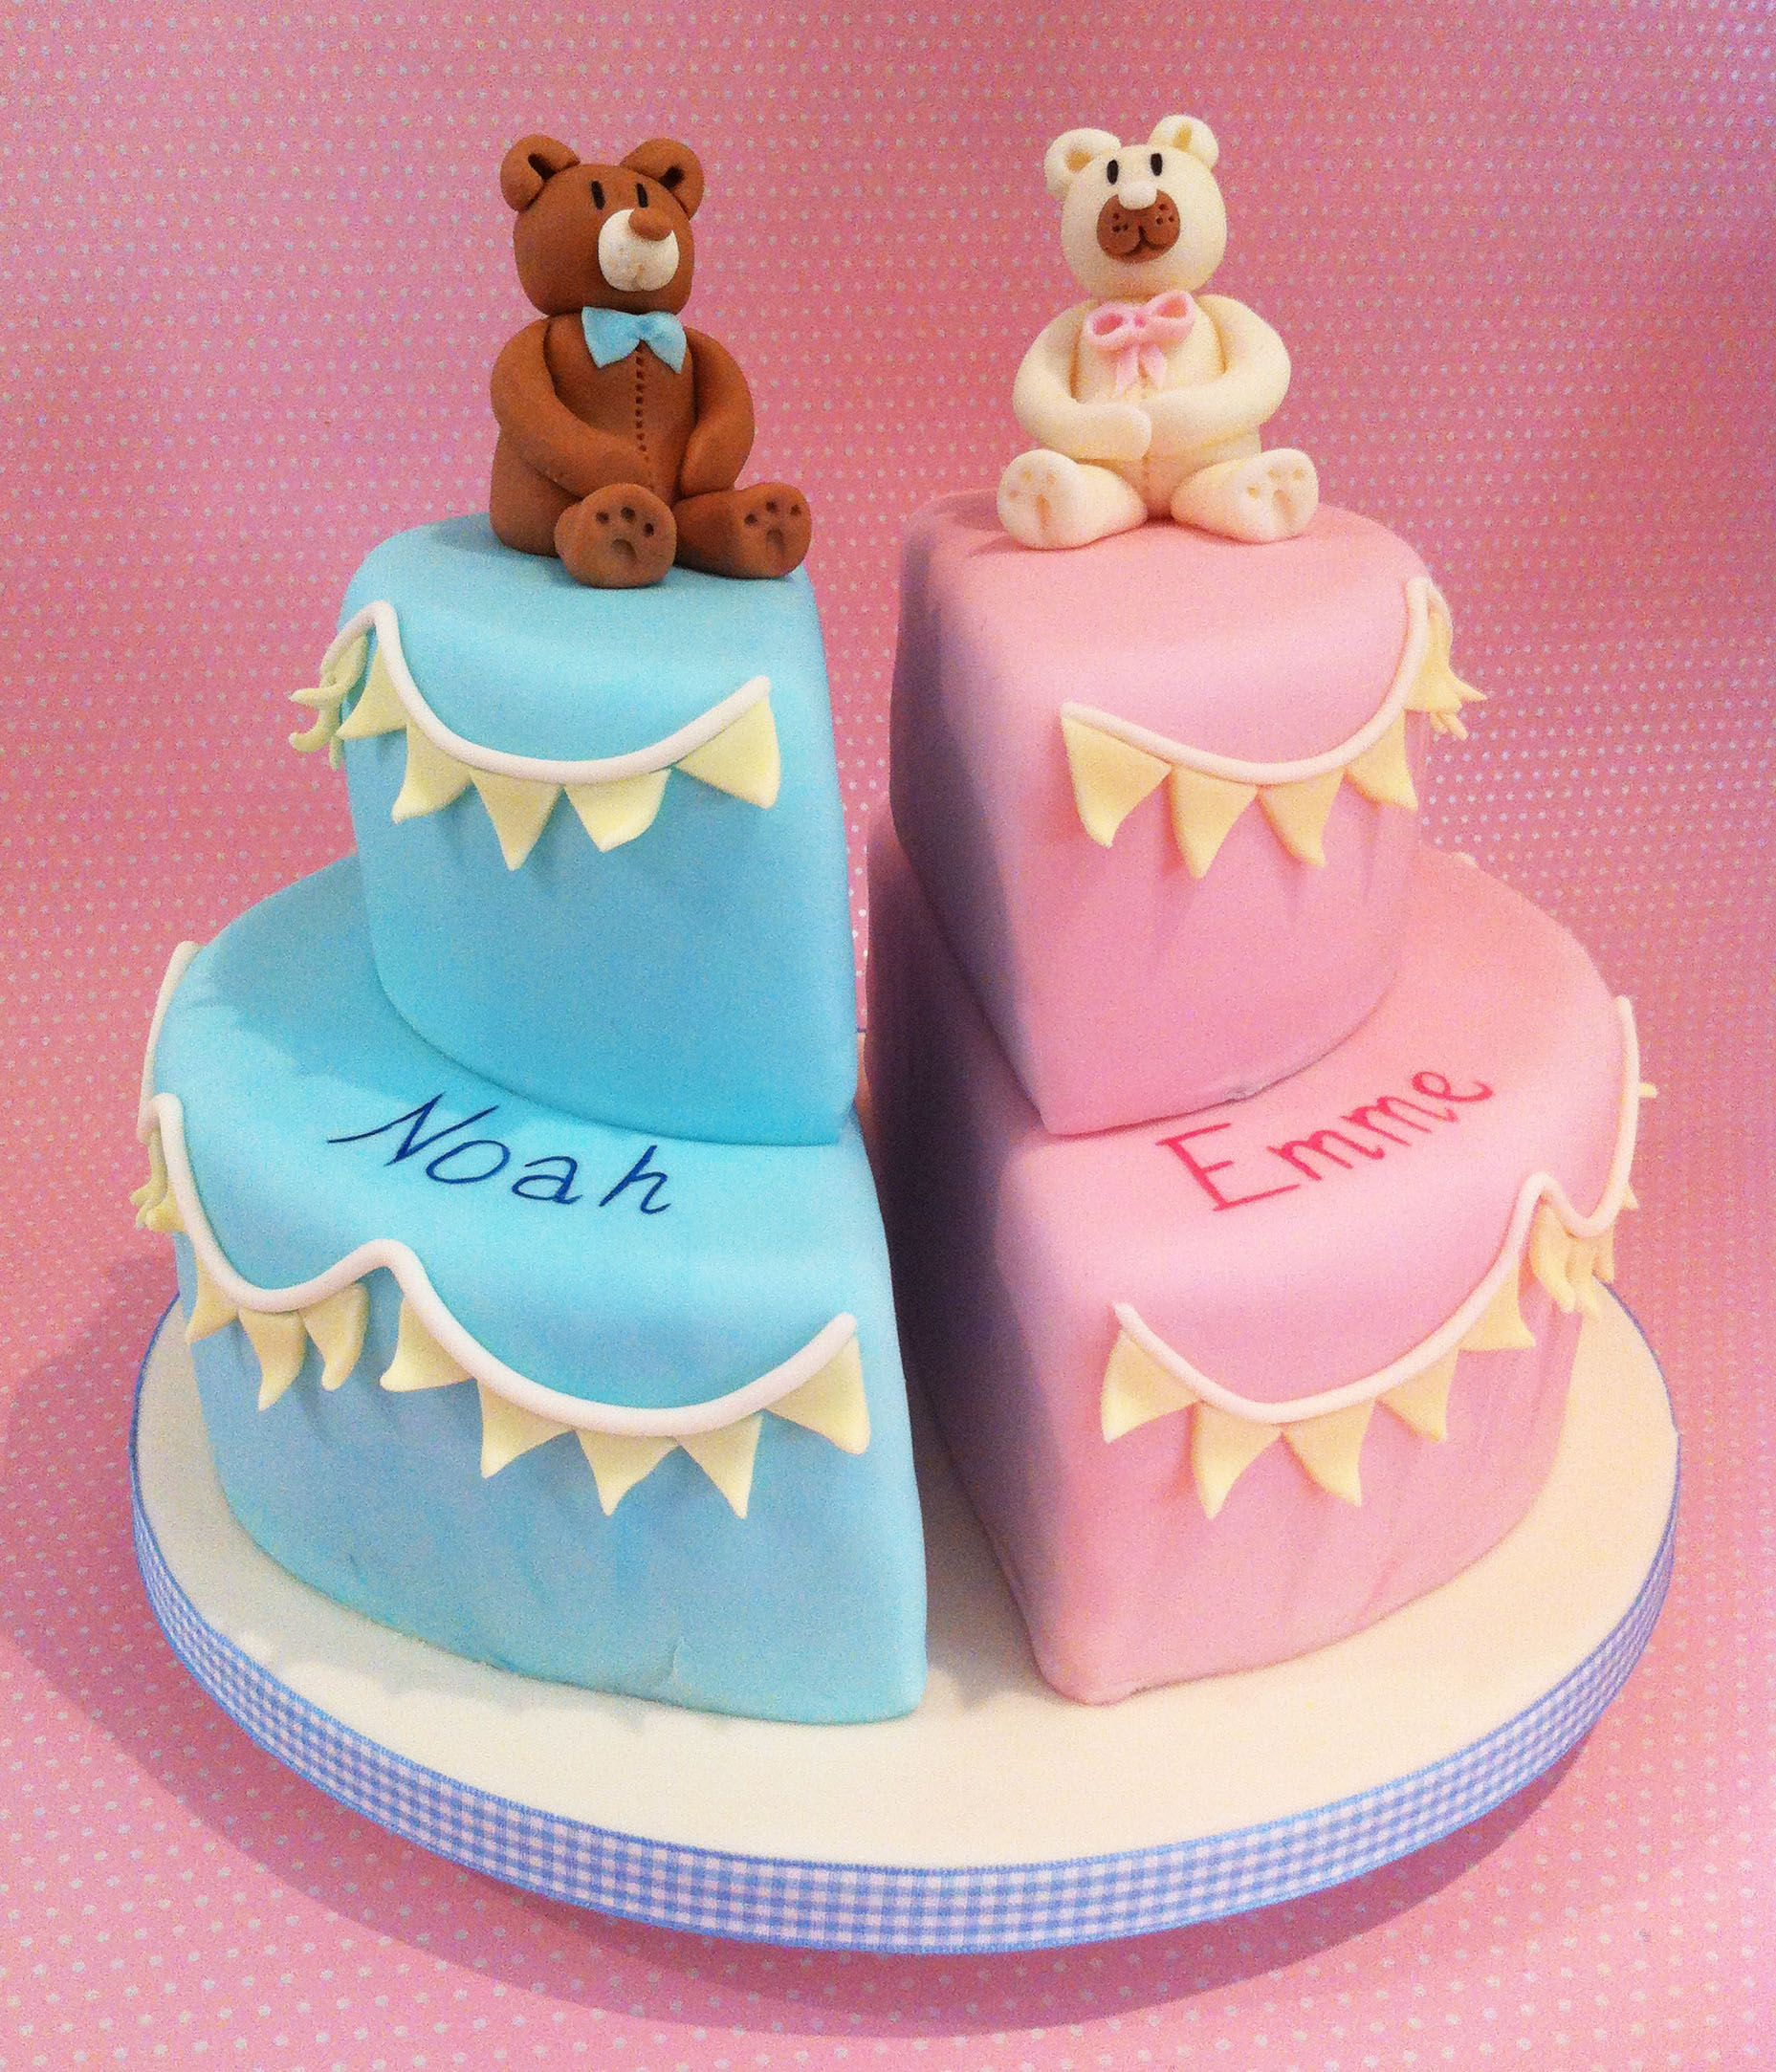 The Split Cake Design Is A Stylish Solution For Creating A